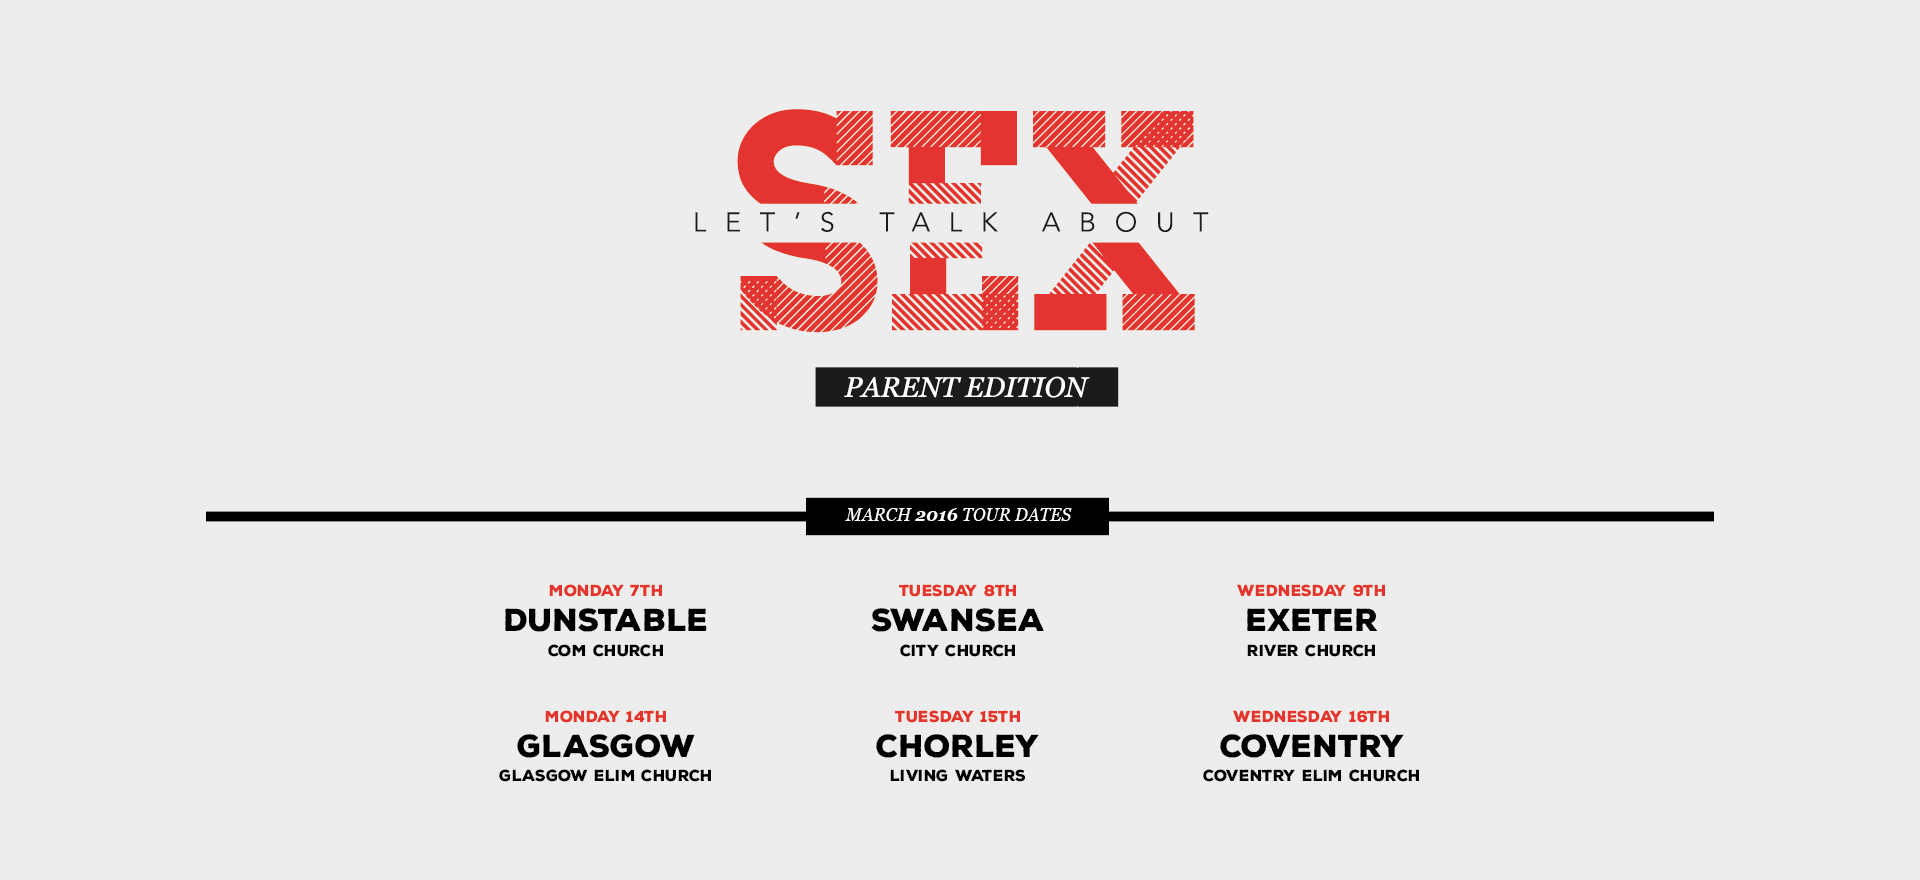 lets talk about sex Let's talk about sex 01092016 let's tell it how it is, and how it could be/ how it  was, and of course, how it should be - salt 'n' pepa, 1991 sex education is a lot .